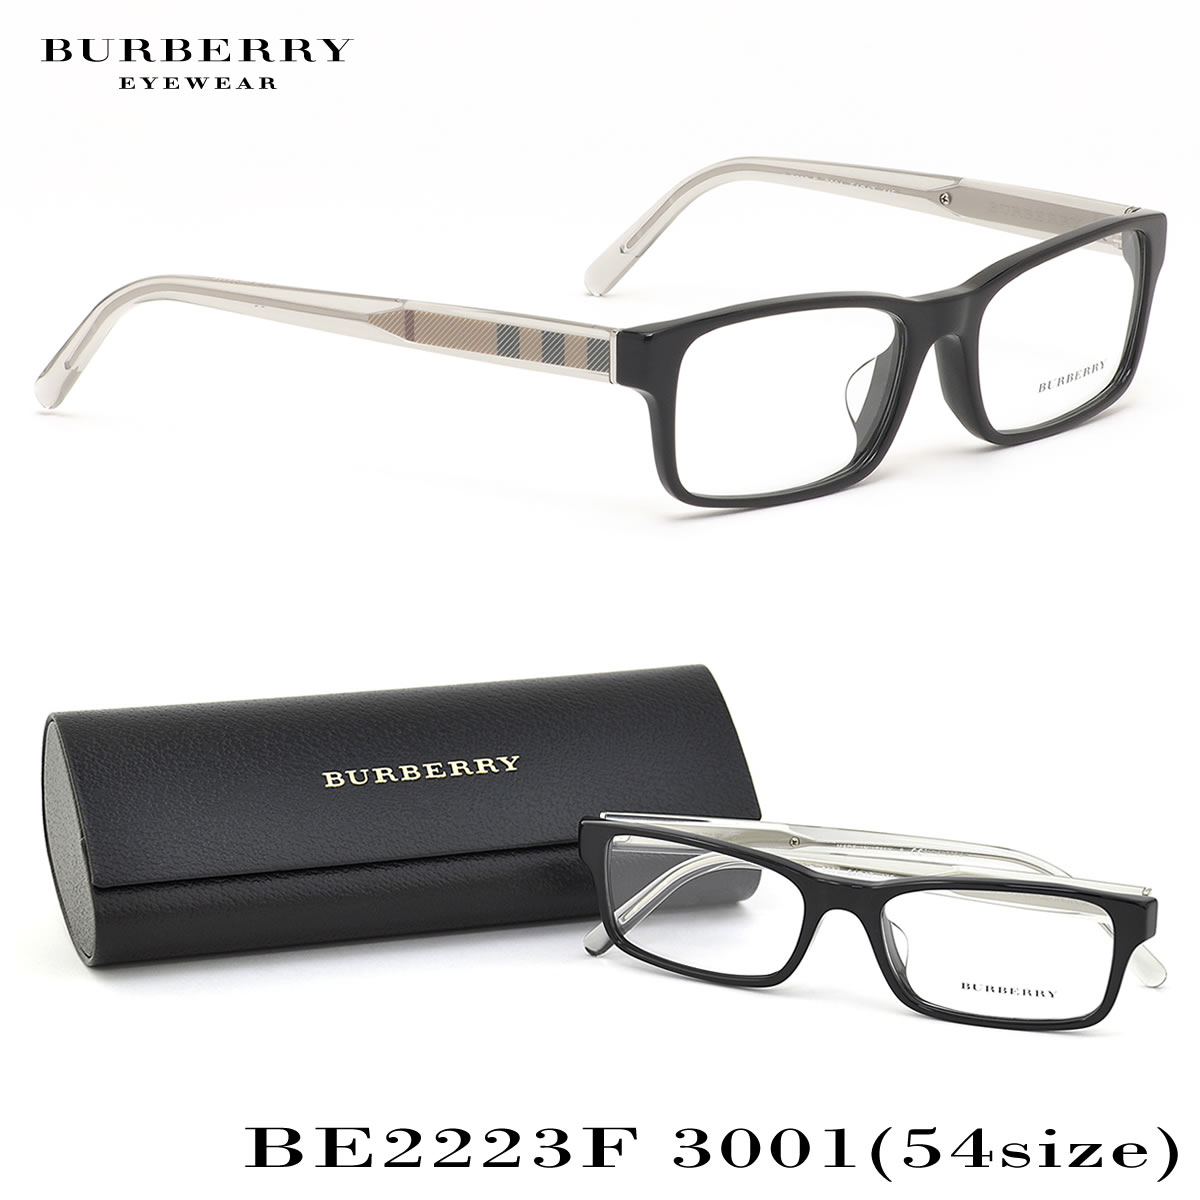 62f5698facd (BURBERRY) Glasses BE2223F 3001 54 size Burberry check square horse  mackerel Ann fitting Burberry BURBERRY men gap Dis BURBERRY men gap Dis